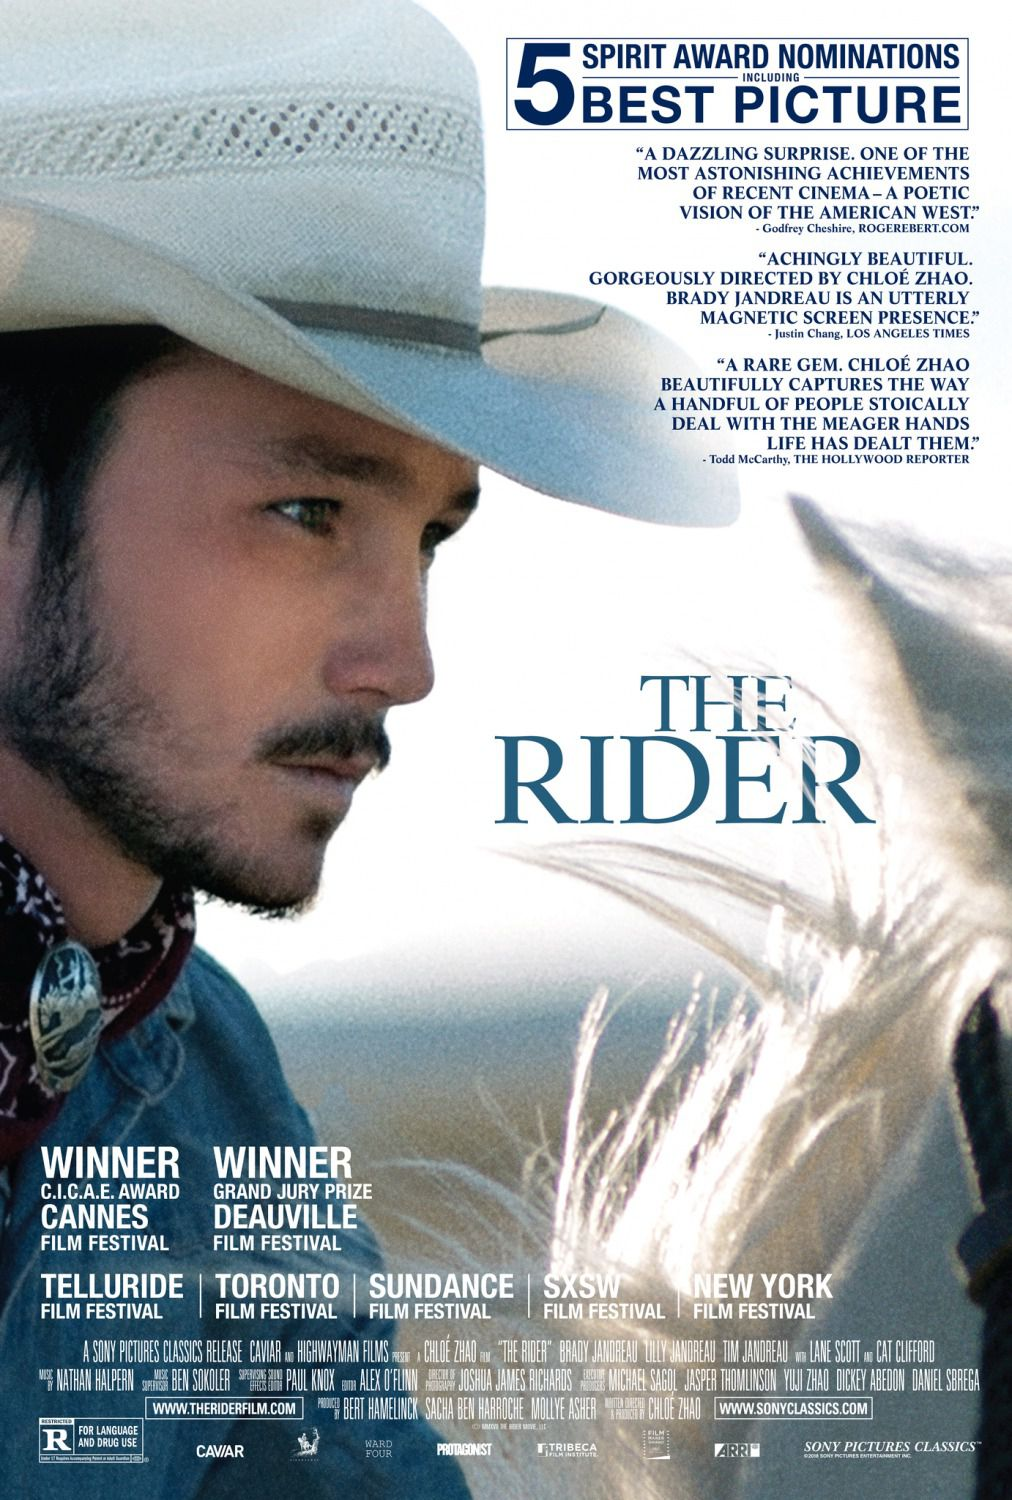 The Rider (2018) - Cast: Brady Lilly and Tim Jandreau, Lane Scott, Cat Clifford - film poster